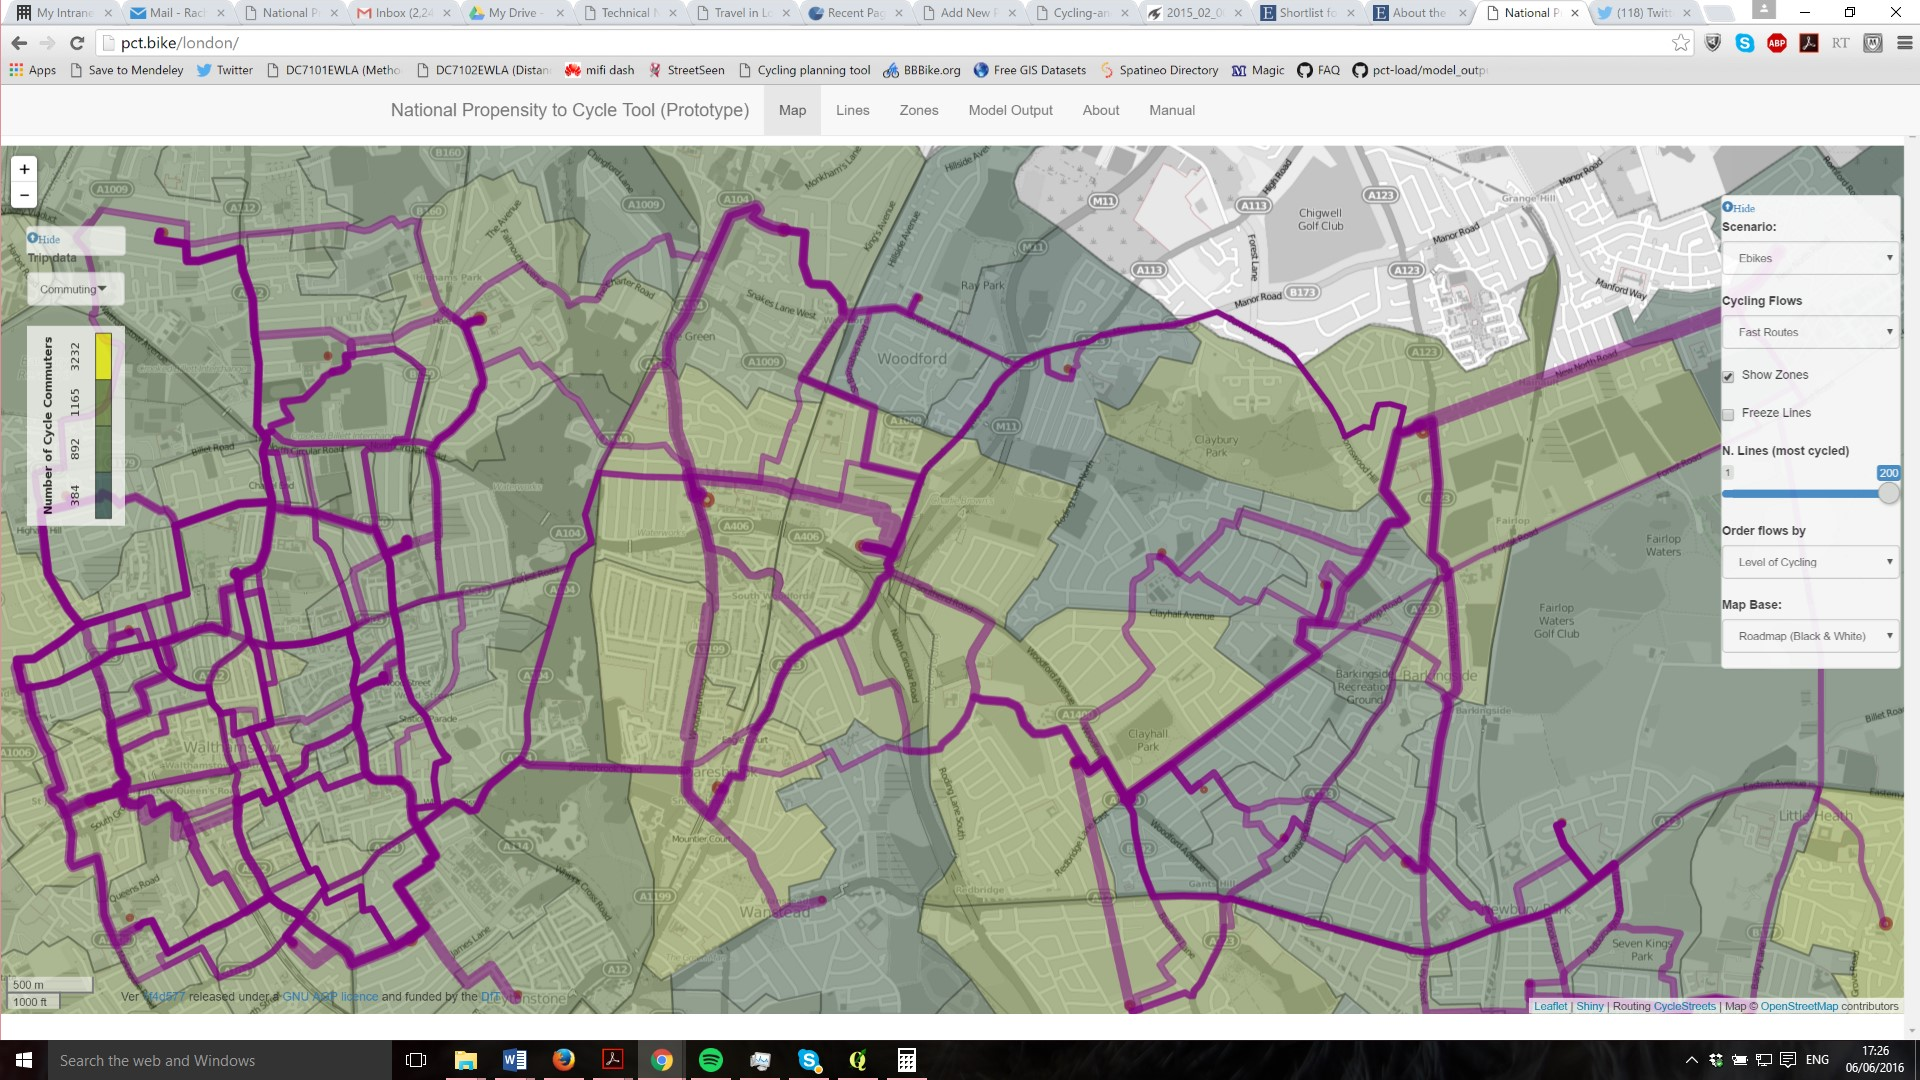 PCT screenshot for part of London